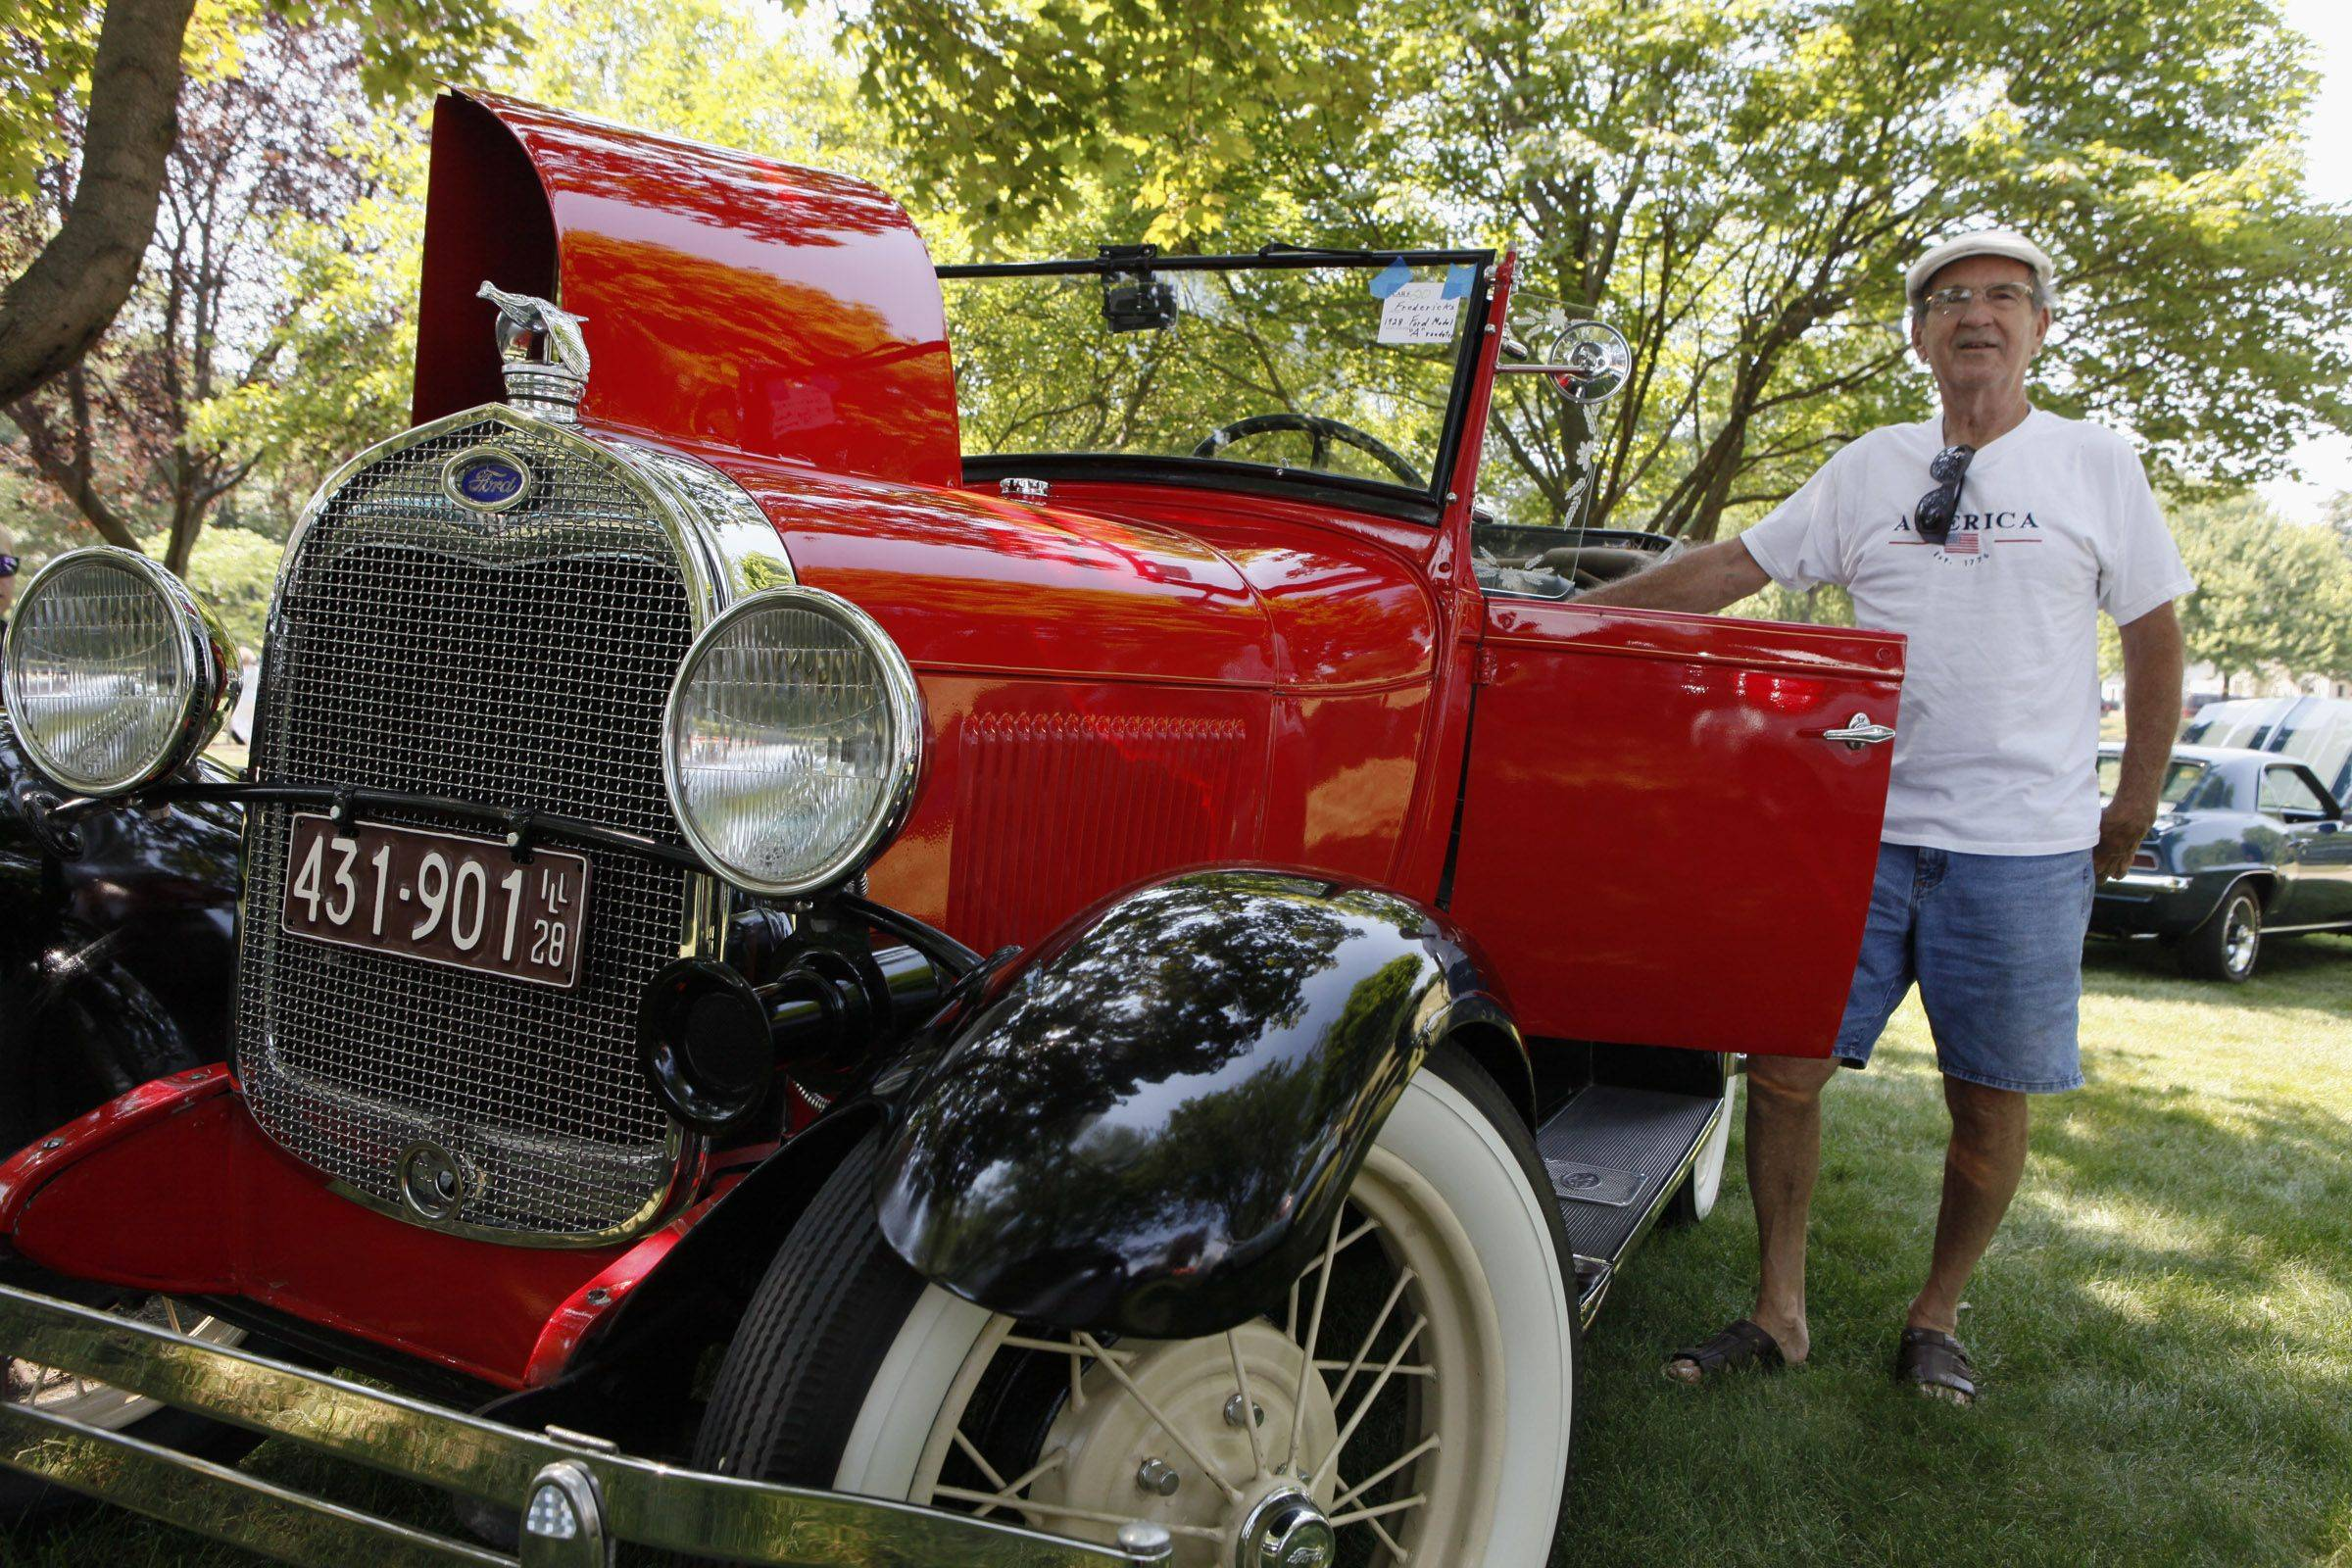 Bernard Fredericks shows off his restored 1928 Ford Model A Roadster during the classic car show Sunday at Itasca Fest.